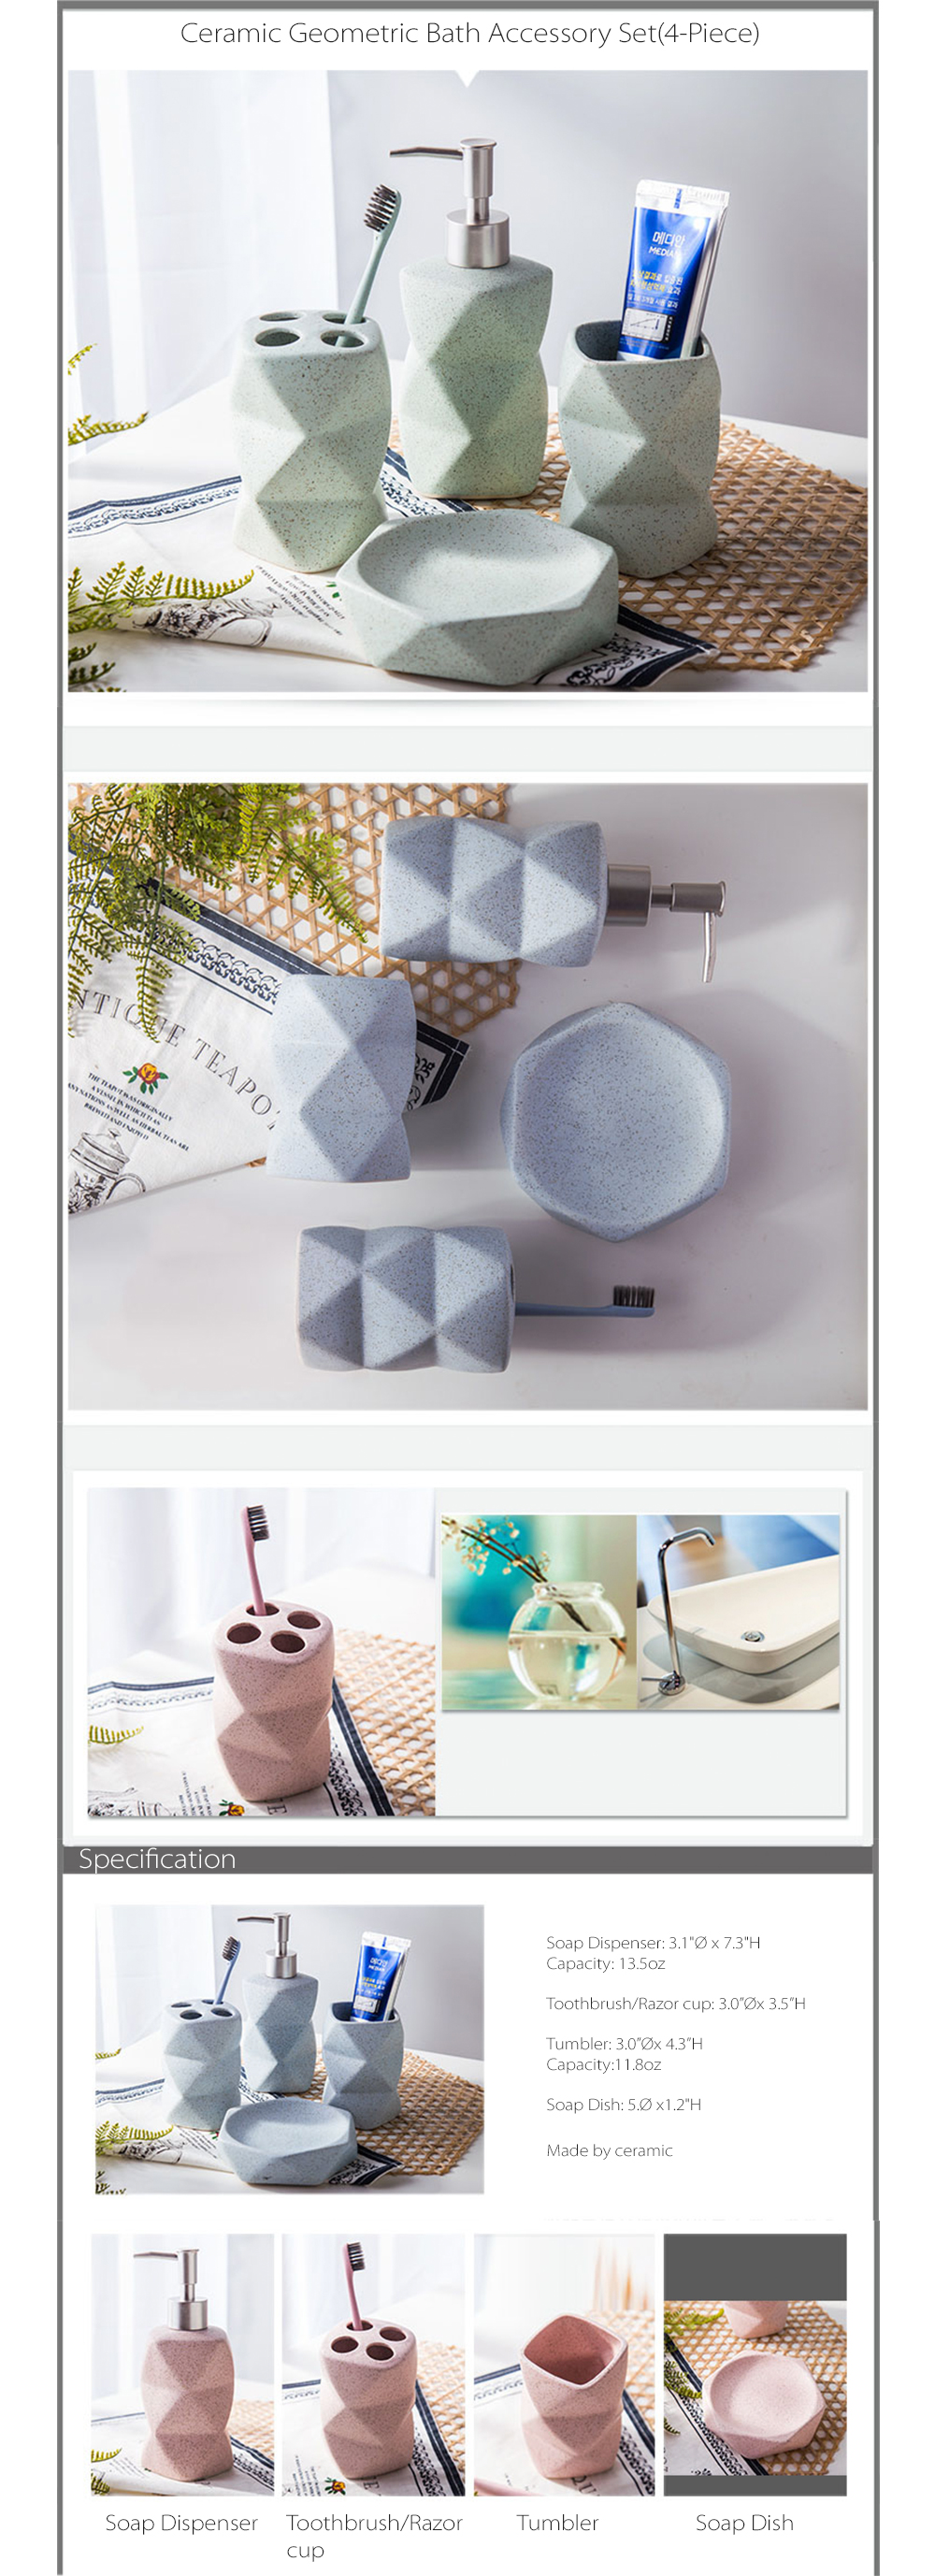 Ceramic Geometric Bath Accessory Set - ApolloBox